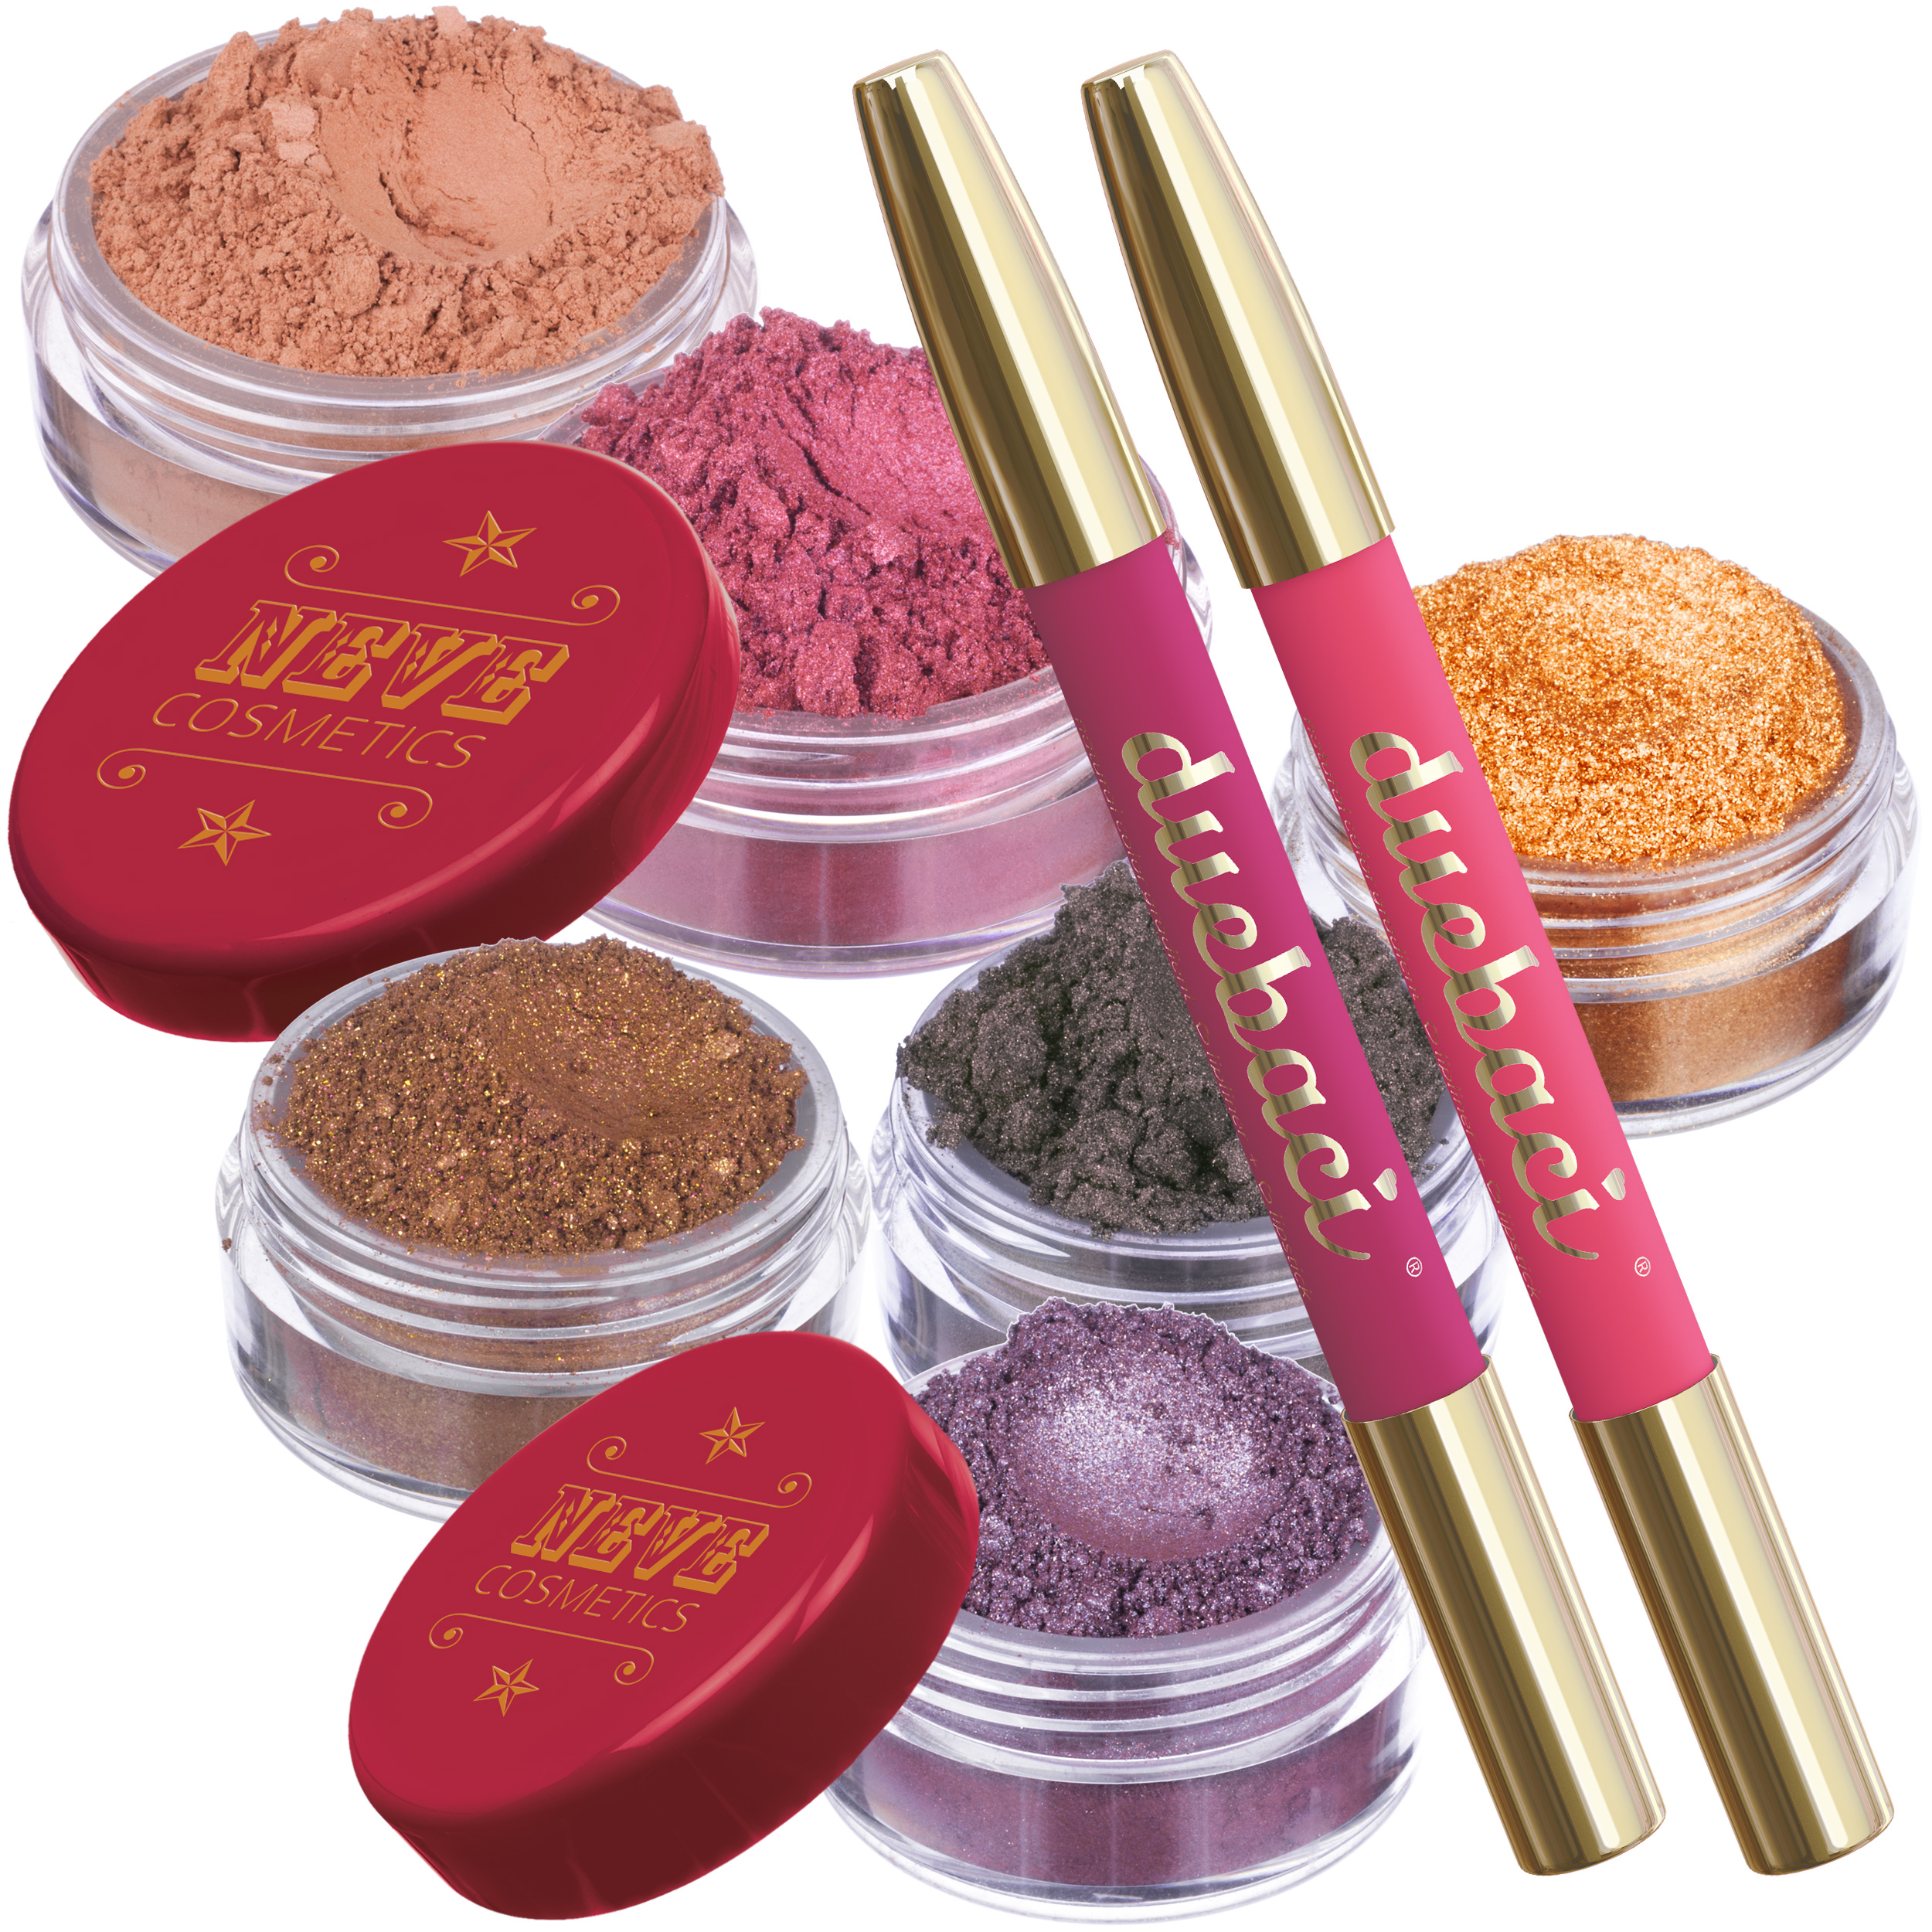 ArtCircus by Neve Cosmetics